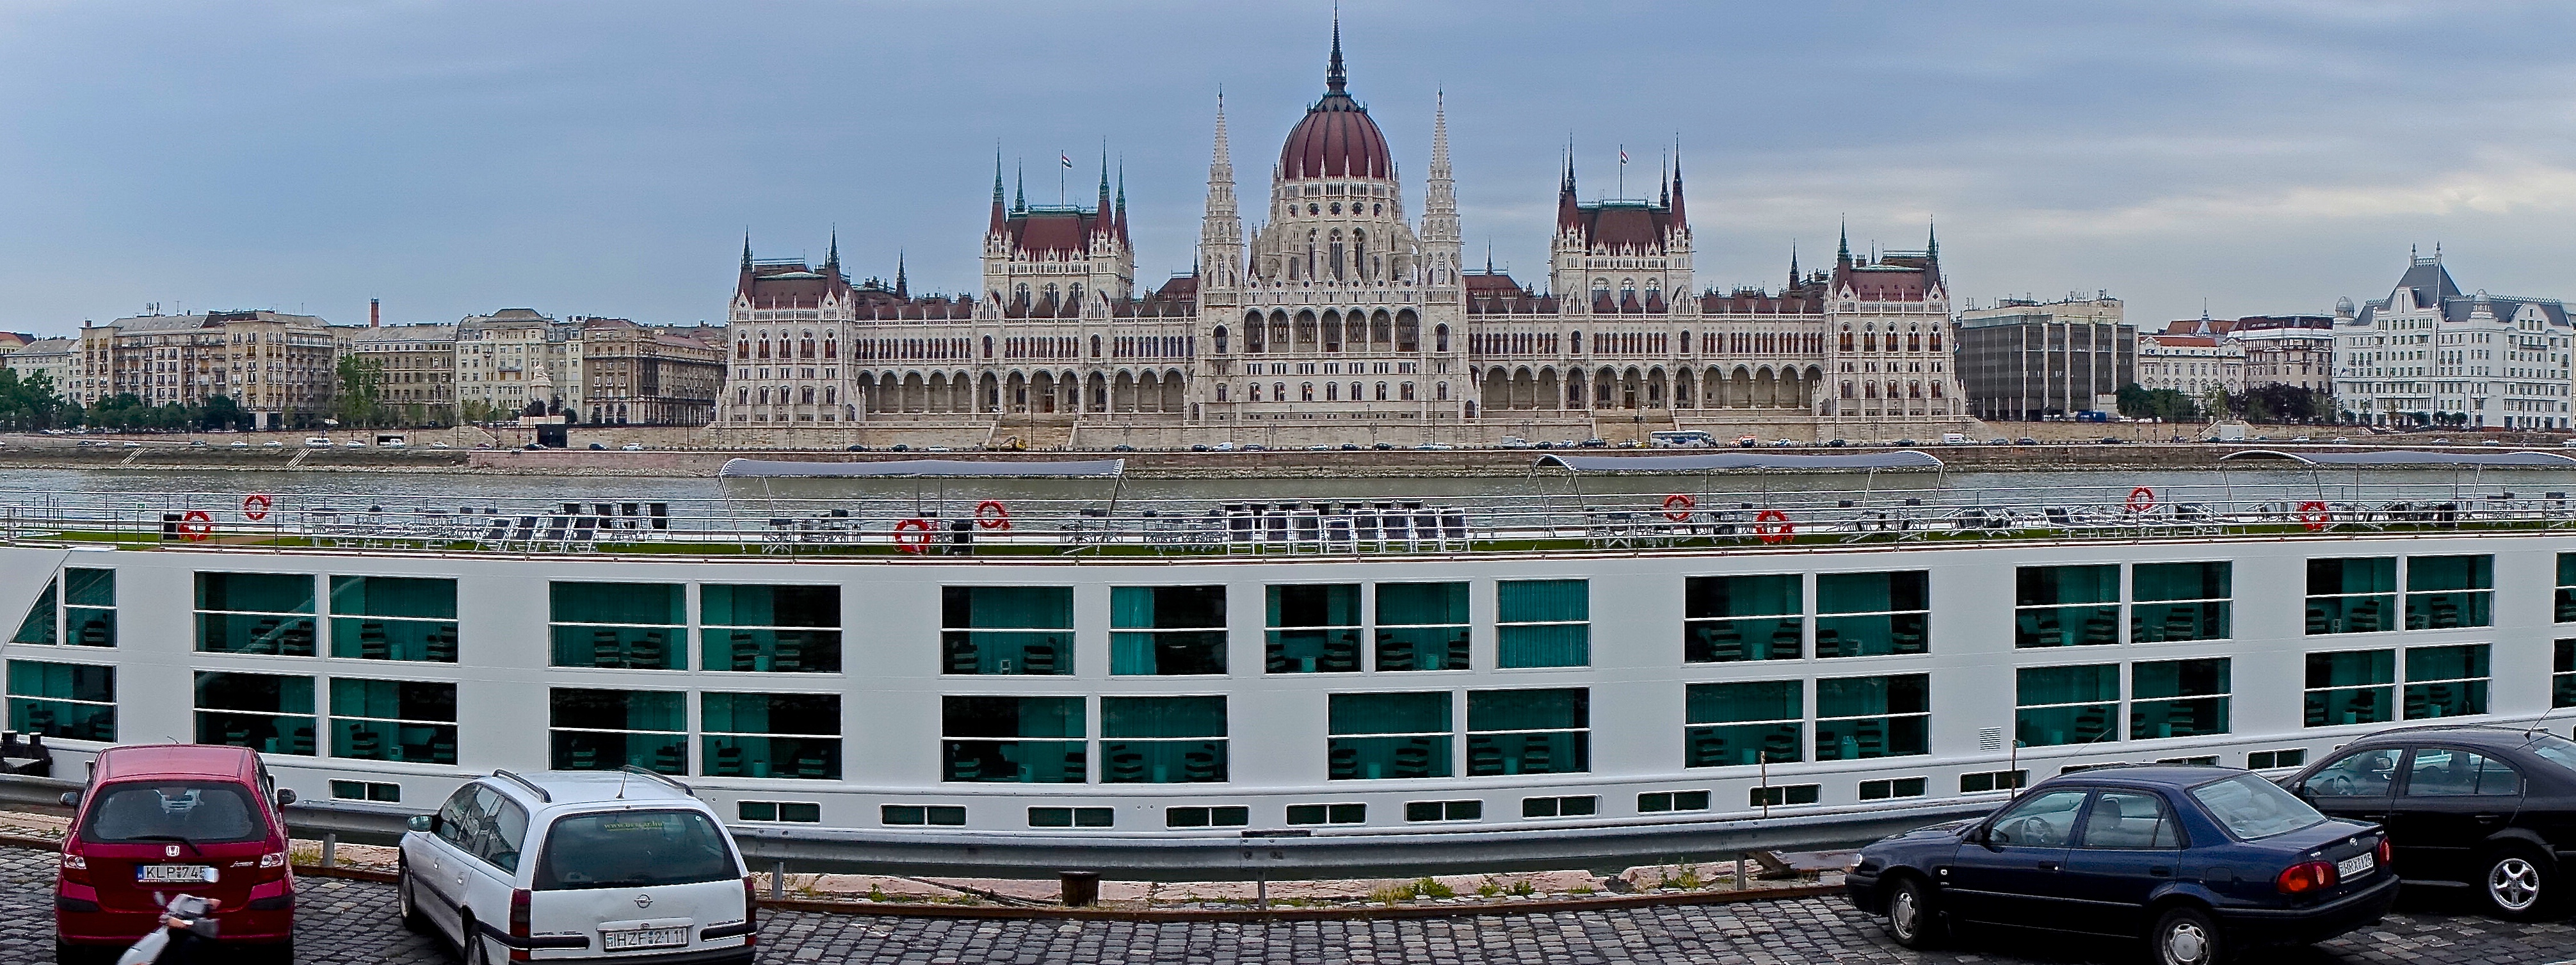 Danube river boat: One smooth history lesson